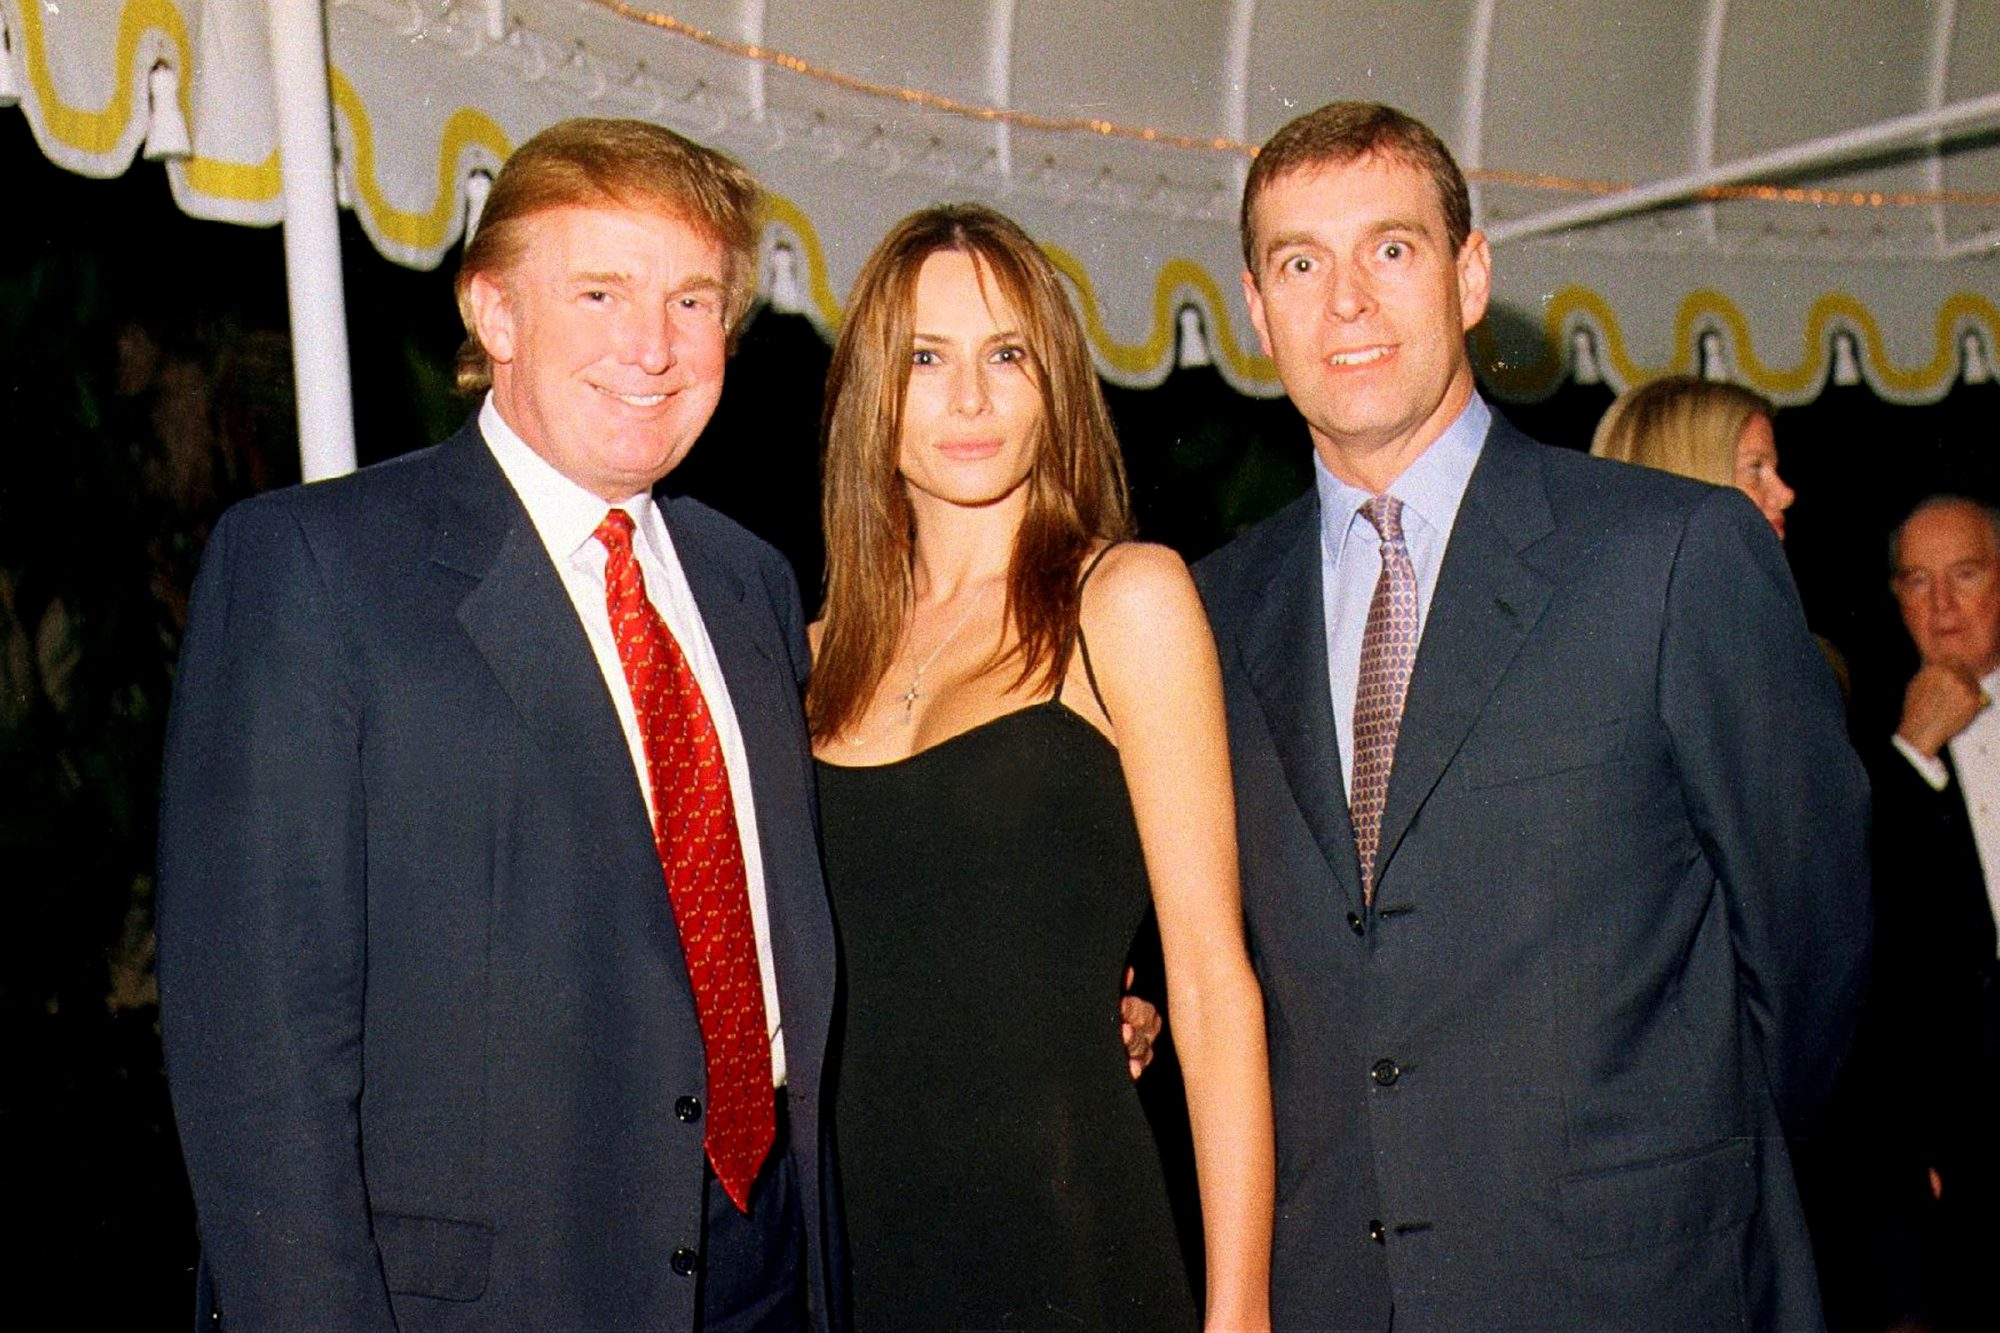 Donald Trump, his girlfriend (and future wife), former model Melania Knauss, and British Prince Andrew, Duke of York, as they pose together at the Mar-a-Lago estate, Palm Beach, Florida, February 12, 2000